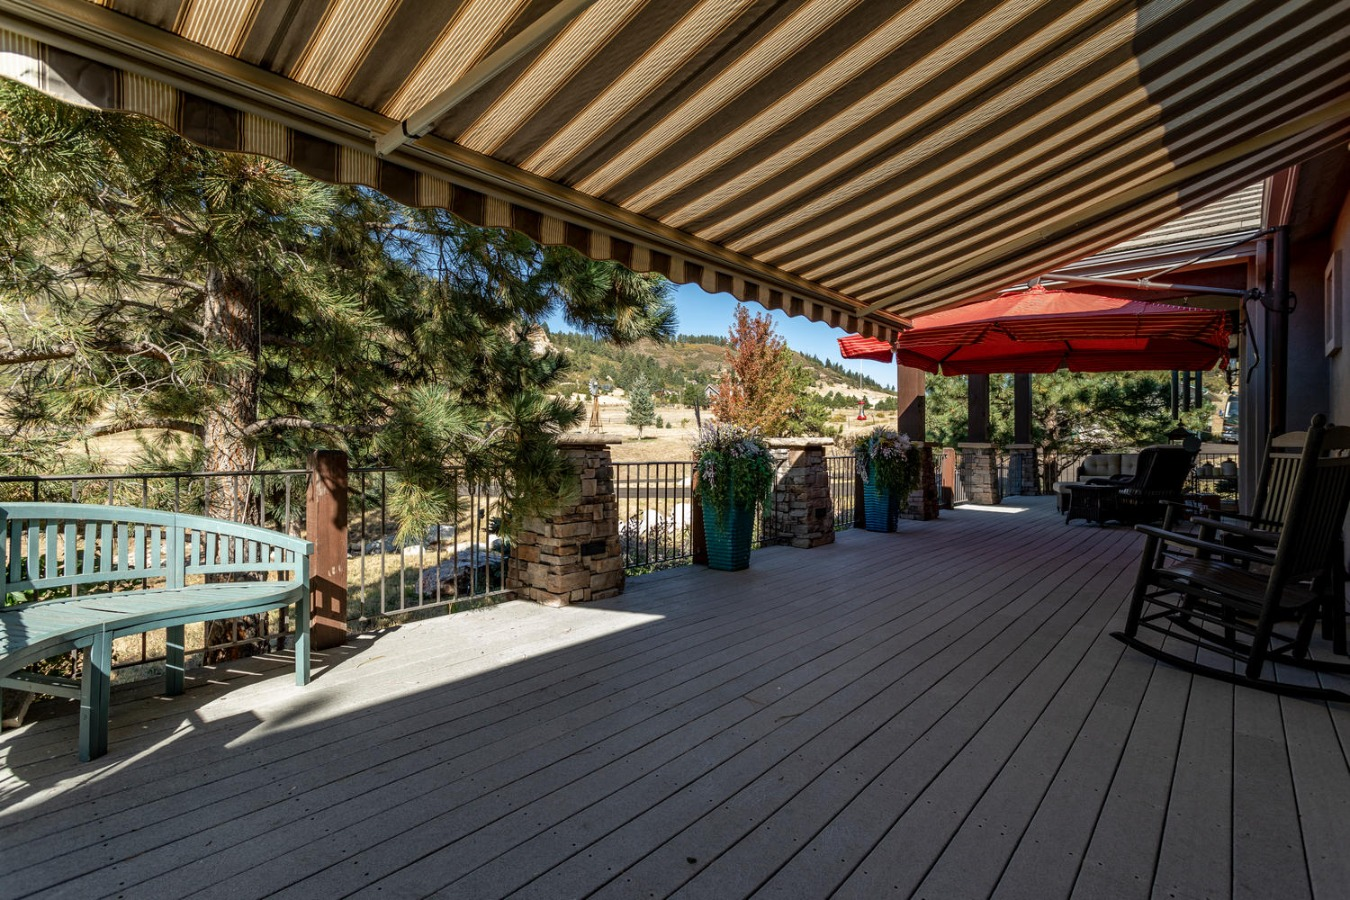 Deck Has Retractable Awning System